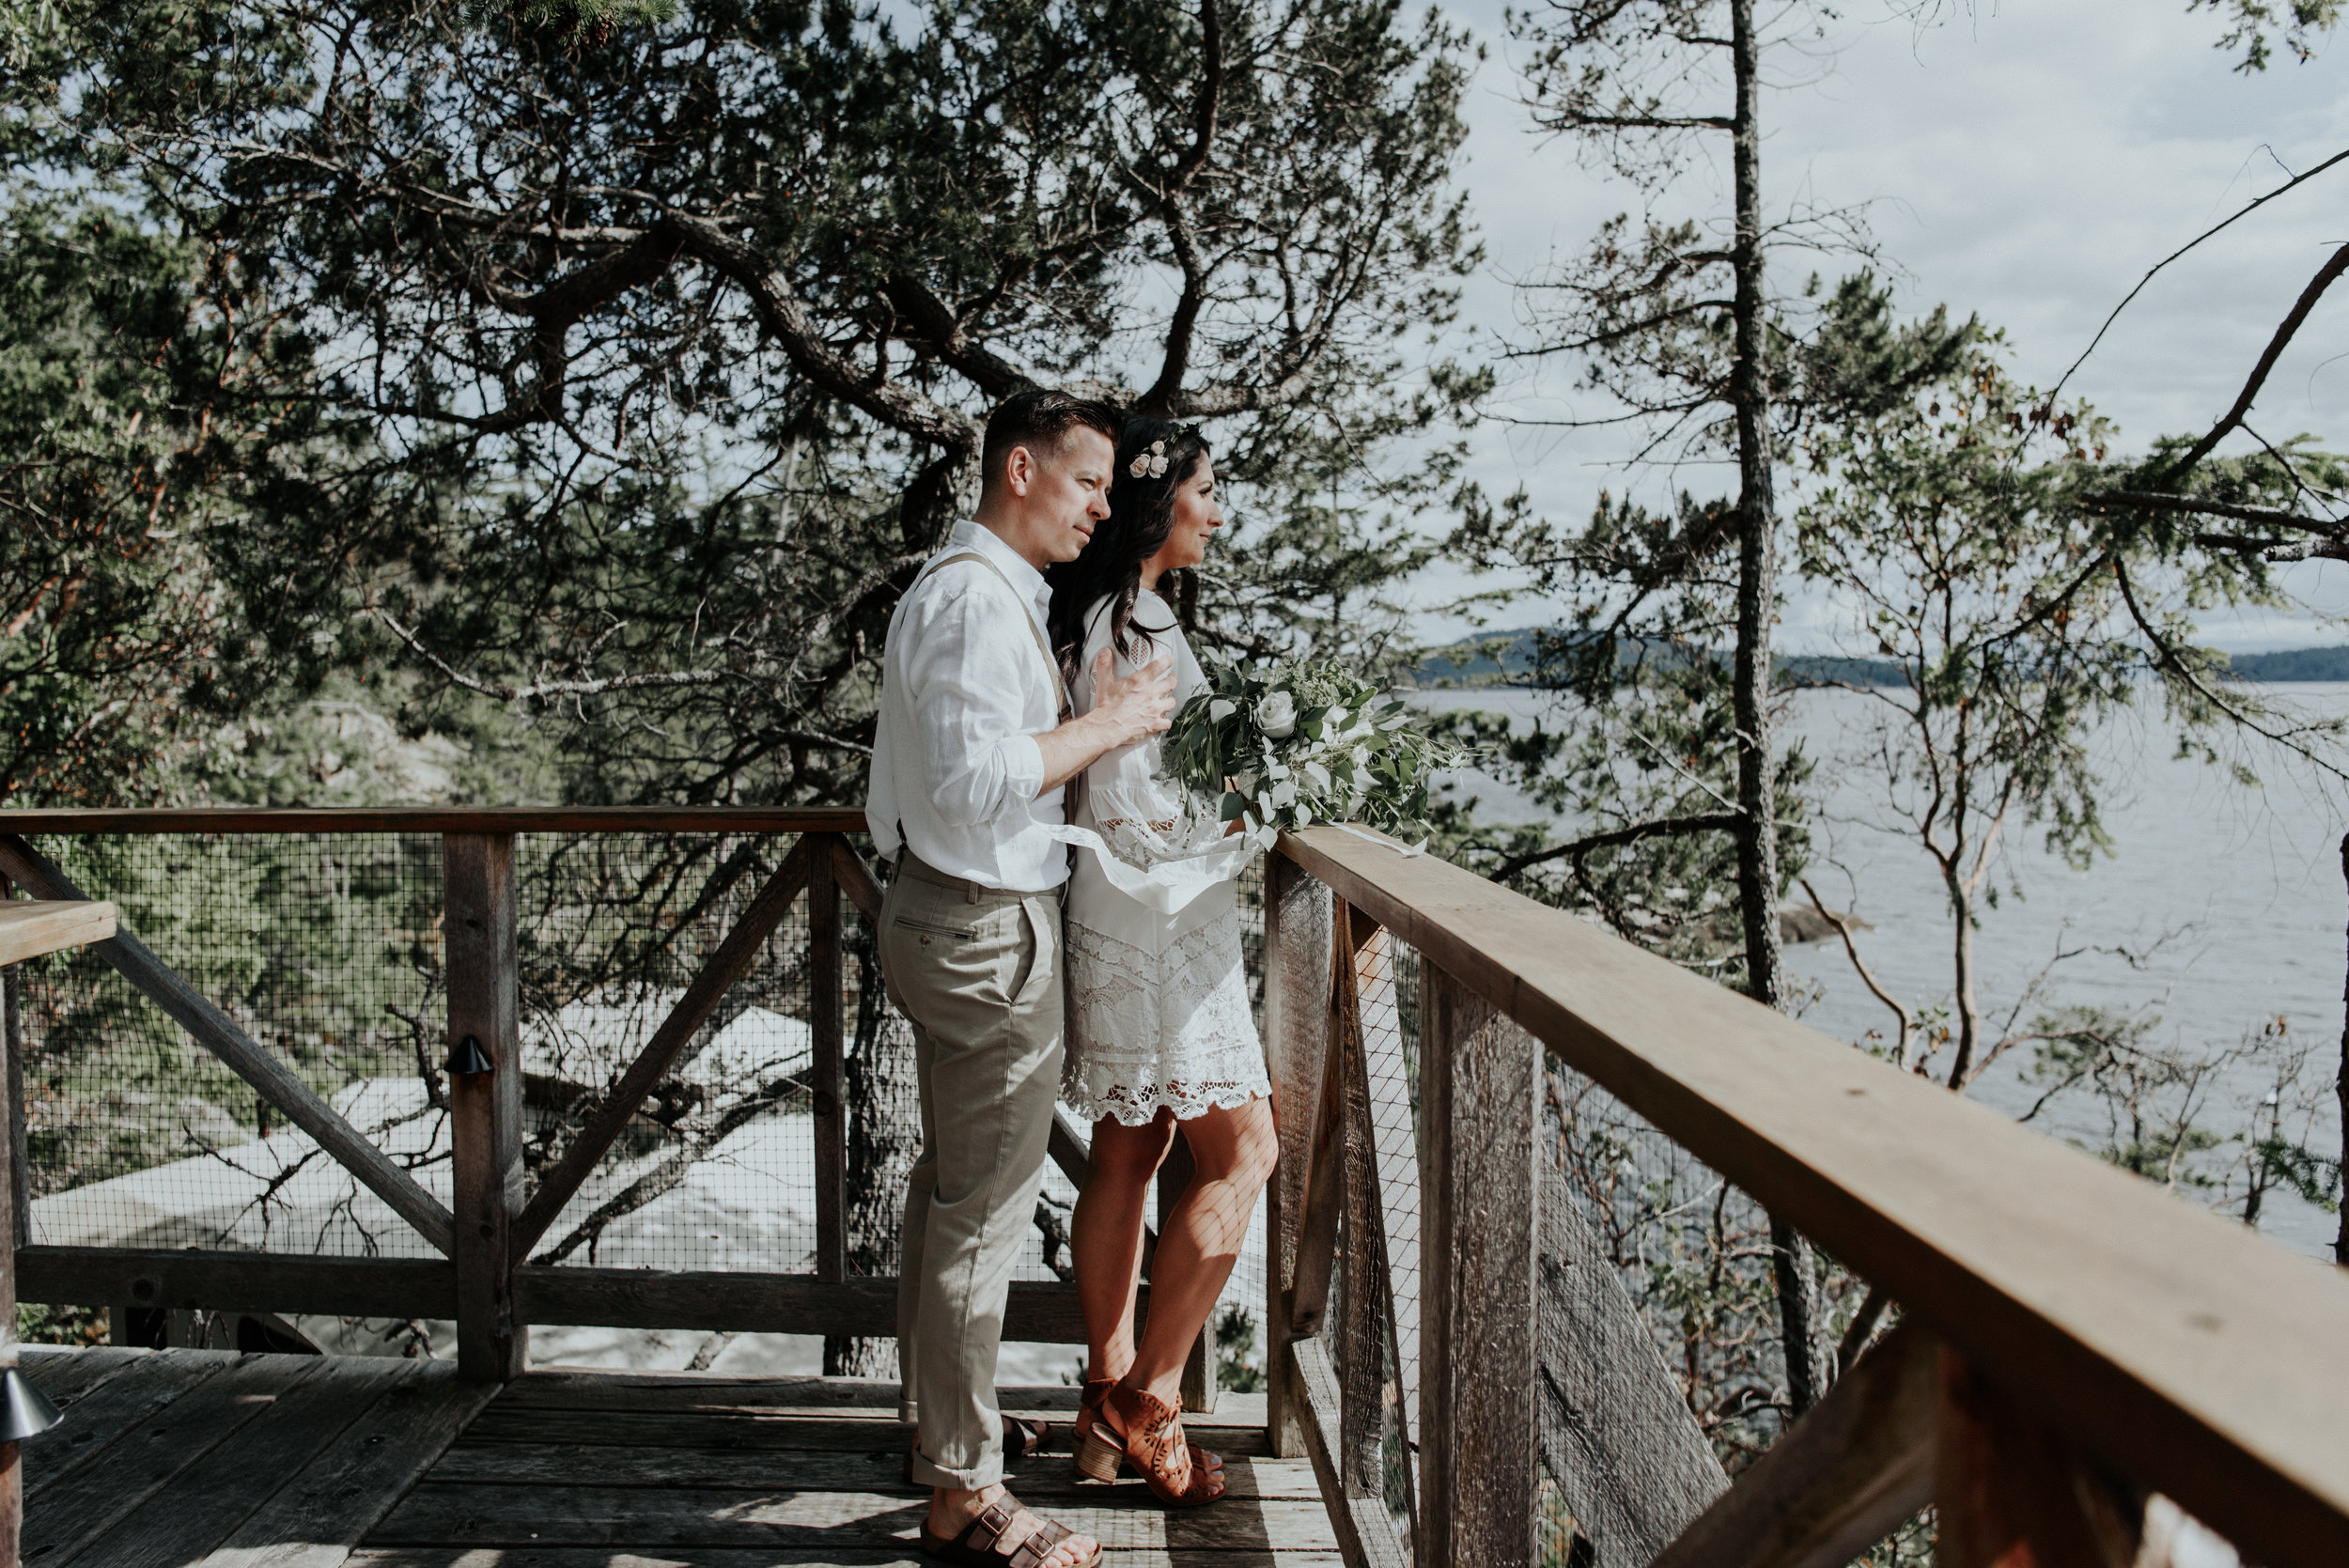 Ashley + Jeff - Rockwater Resort Elopement - Sunshine Coast BC Photographer - Laura Olson Photography-3867.jpg